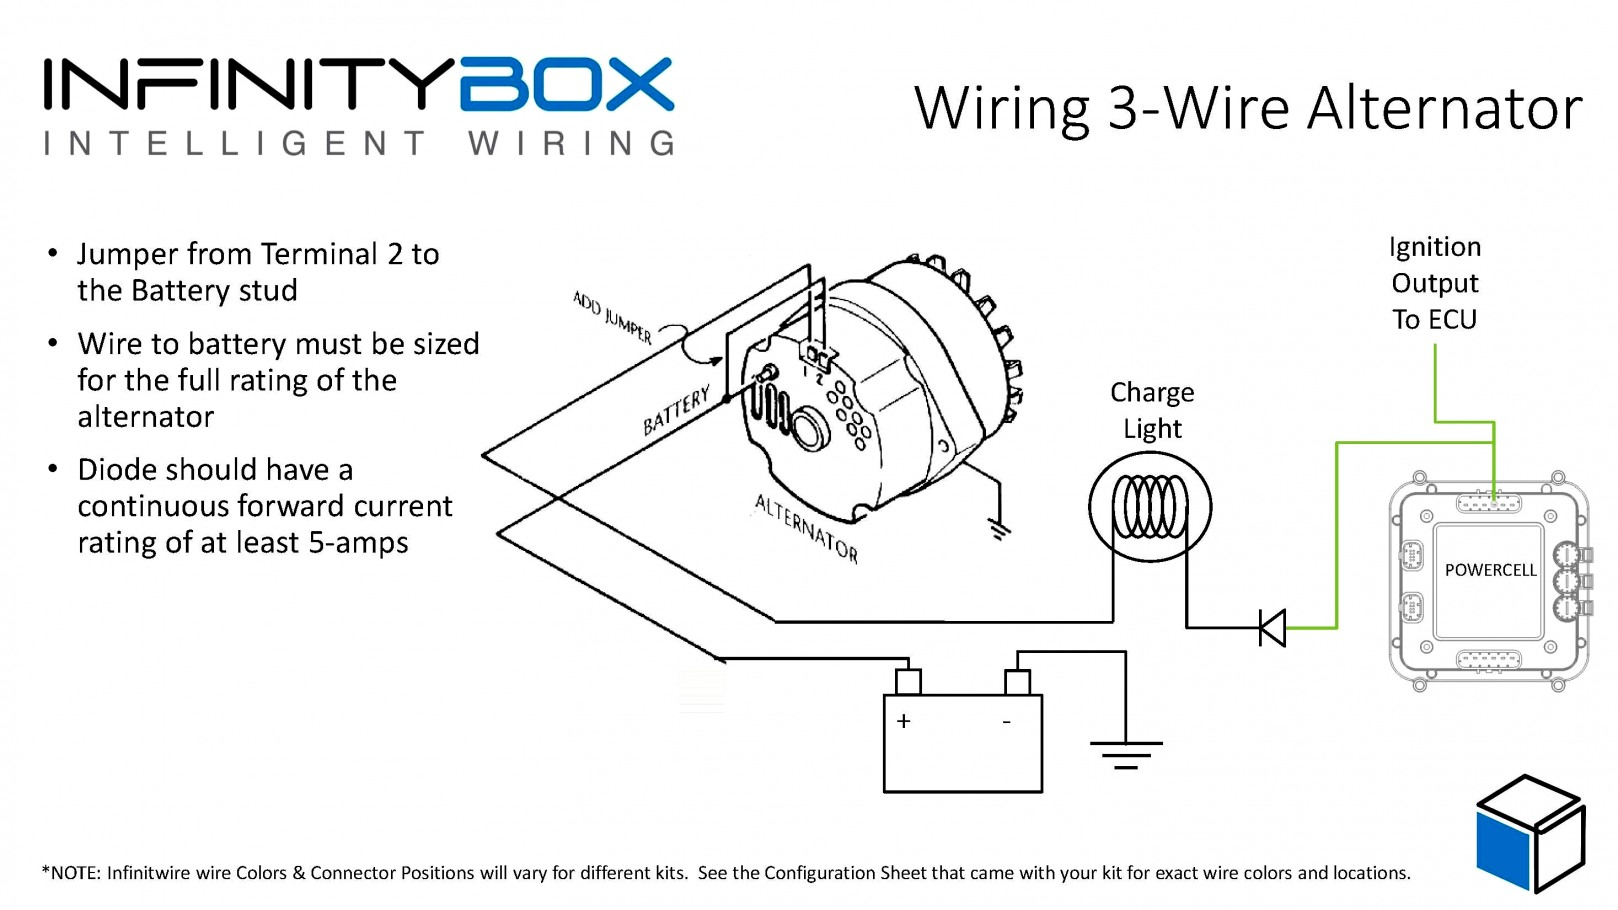 5 Wire Alternator Diagram - Wiring Diagram - Chevy 4 Wire Alternator Wiring Diagram